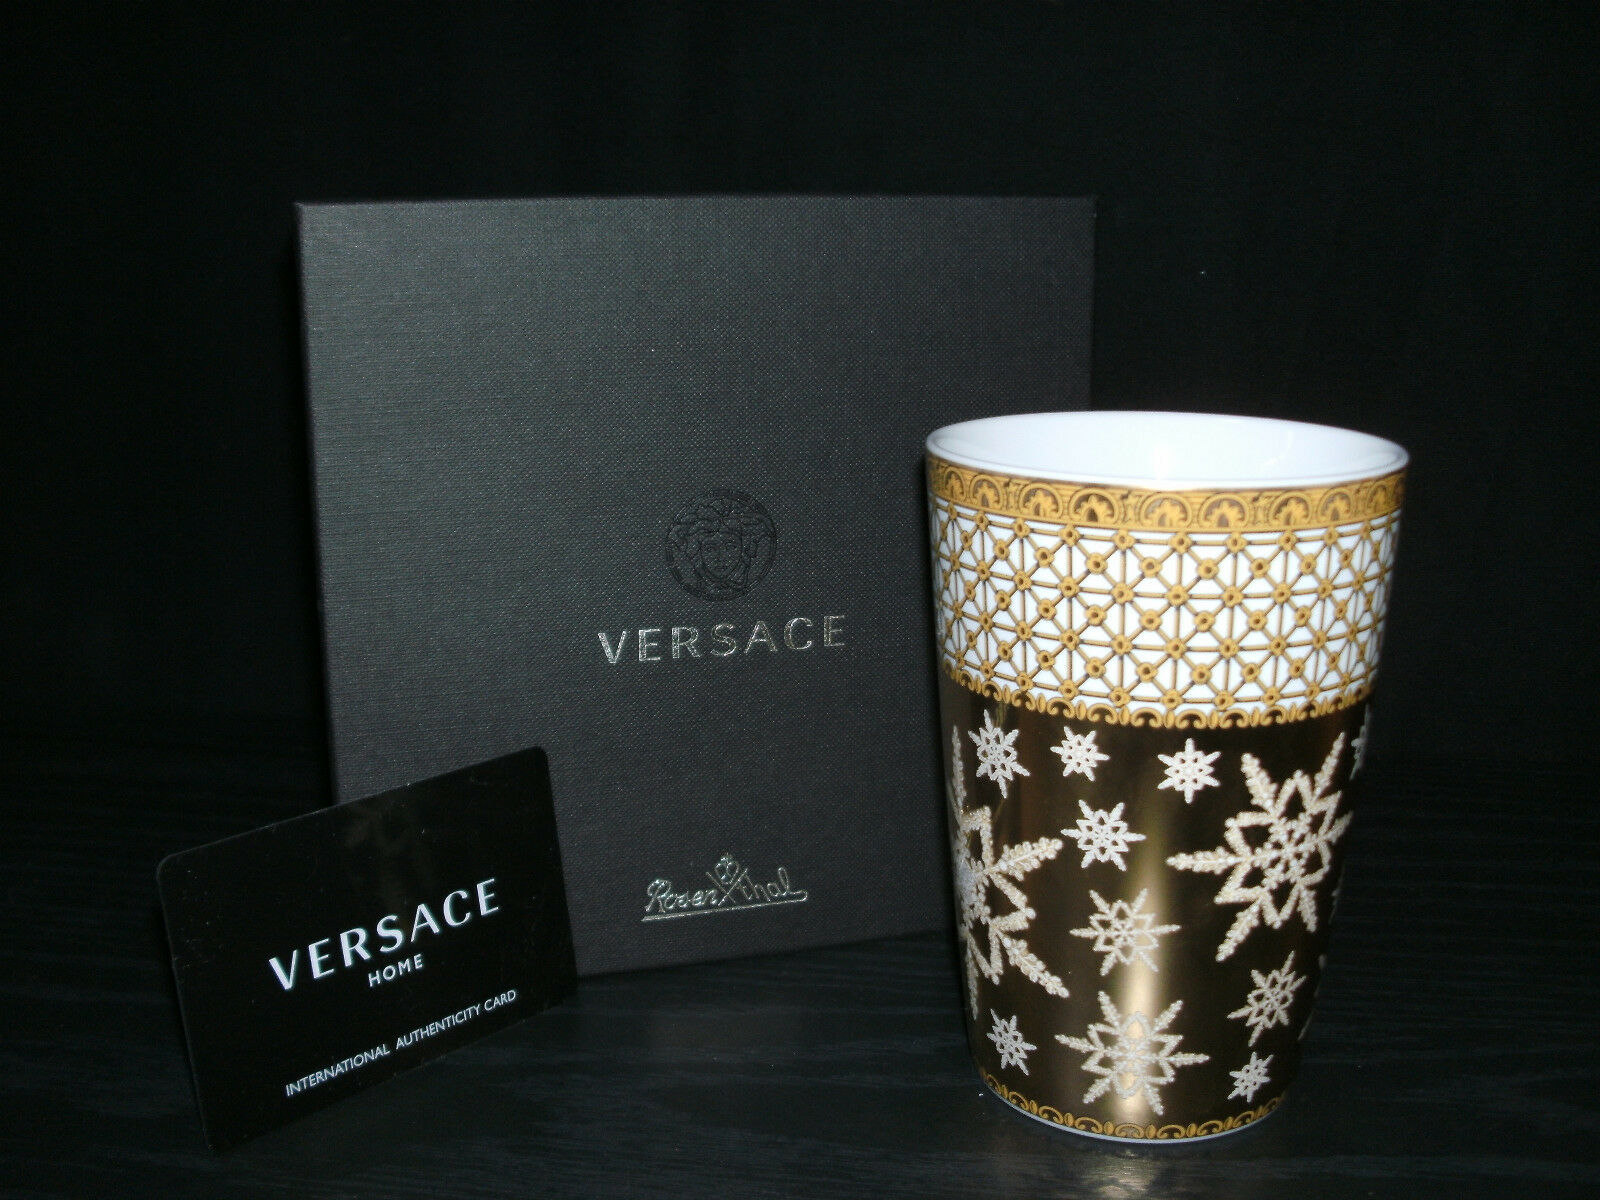 Rosenthal versace Christmas in your heart 2010 gobelet NOUVEAU & OVP 1. choix